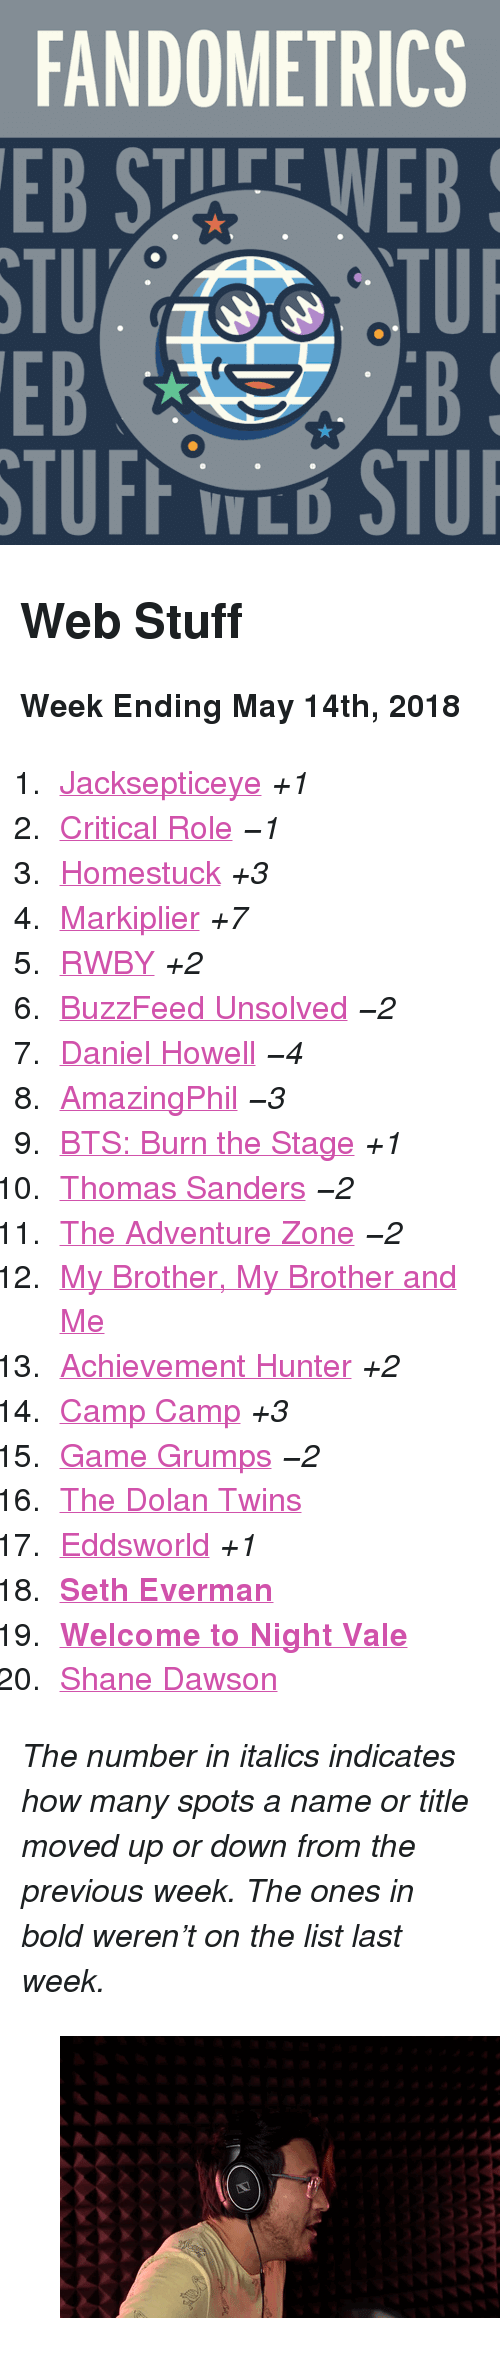 """markiplier: FANDOMETRICS  STU  EB  TUFF TLO STU <h2>Web Stuff</h2><p><b>Week Ending May 14th, 2018</b></p><ol><li><a href=""""http://www.tumblr.com/search/jacksepticeye"""">Jacksepticeye</a><i>+1</i></li>  <li><a href=""""http://www.tumblr.com/search/critical%20role"""">Critical Role</a><i><i>−1</i></i></li>  <li><a href=""""http://www.tumblr.com/search/homestuck"""">Homestuck</a><i>+3</i></li>  <li><a href=""""http://www.tumblr.com/search/markiplier"""">Markiplier</a><i>+7</i></li>  <li><a href=""""http://www.tumblr.com/search/rwby"""">RWBY</a><i>+2</i></li>  <li><a href=""""http://www.tumblr.com/search/buzzfeed%20unsolved"""">BuzzFeed Unsolved</a><i><i>−2</i></i></li>  <li><a href=""""http://www.tumblr.com/search/daniel%20howell"""">Daniel Howell</a><i><i>−4</i></i></li>  <li><a href=""""http://www.tumblr.com/search/amazingphil"""">AmazingPhil</a><i><i>−3</i></i></li>  <li><a href=""""http://www.tumblr.com/search/burn%20the%20stage"""">BTS: Burn the Stage</a><i>+1</i></li>  <li><a href=""""http://www.tumblr.com/search/thomas%20sanders"""">Thomas Sanders</a><i><i>−2</i></i></li>  <li><a href=""""http://www.tumblr.com/search/the%20adventure%20zone"""">The Adventure Zone</a><i><i>−2</i></i></li>  <li><a href=""""http://www.tumblr.com/search/mbmbam"""">My Brother, My Brother and Me</a></li>  <li><a href=""""http://www.tumblr.com/search/achievement%20hunter"""">Achievement Hunter</a><i>+2</i></li>  <li><a href=""""http://www.tumblr.com/search/camp%20camp"""">Camp Camp</a><i>+3</i></li>  <li><a href=""""http://www.tumblr.com/search/game%20grumps"""">Game Grumps</a><i><i>−2</i></i></li>  <li><a href=""""http://www.tumblr.com/search/dolan%20twins"""">The Dolan Twins</a></li>  <li><a href=""""http://www.tumblr.com/search/eddsworld"""">Eddsworld</a><i>+1</i></li>  <li><a href=""""http://www.tumblr.com/search/setheverman""""><b>Seth Everman</b></a></li>  <li><a href=""""http://www.tumblr.com/search/wtnv""""><b>Welcome to Night Vale</b></a></li>  <li><a href=""""http://www.tumblr.com/search/shane%20dawson"""">Shane Dawson</a></li></ol><p><i>The number in italics indicates how many spots a name"""